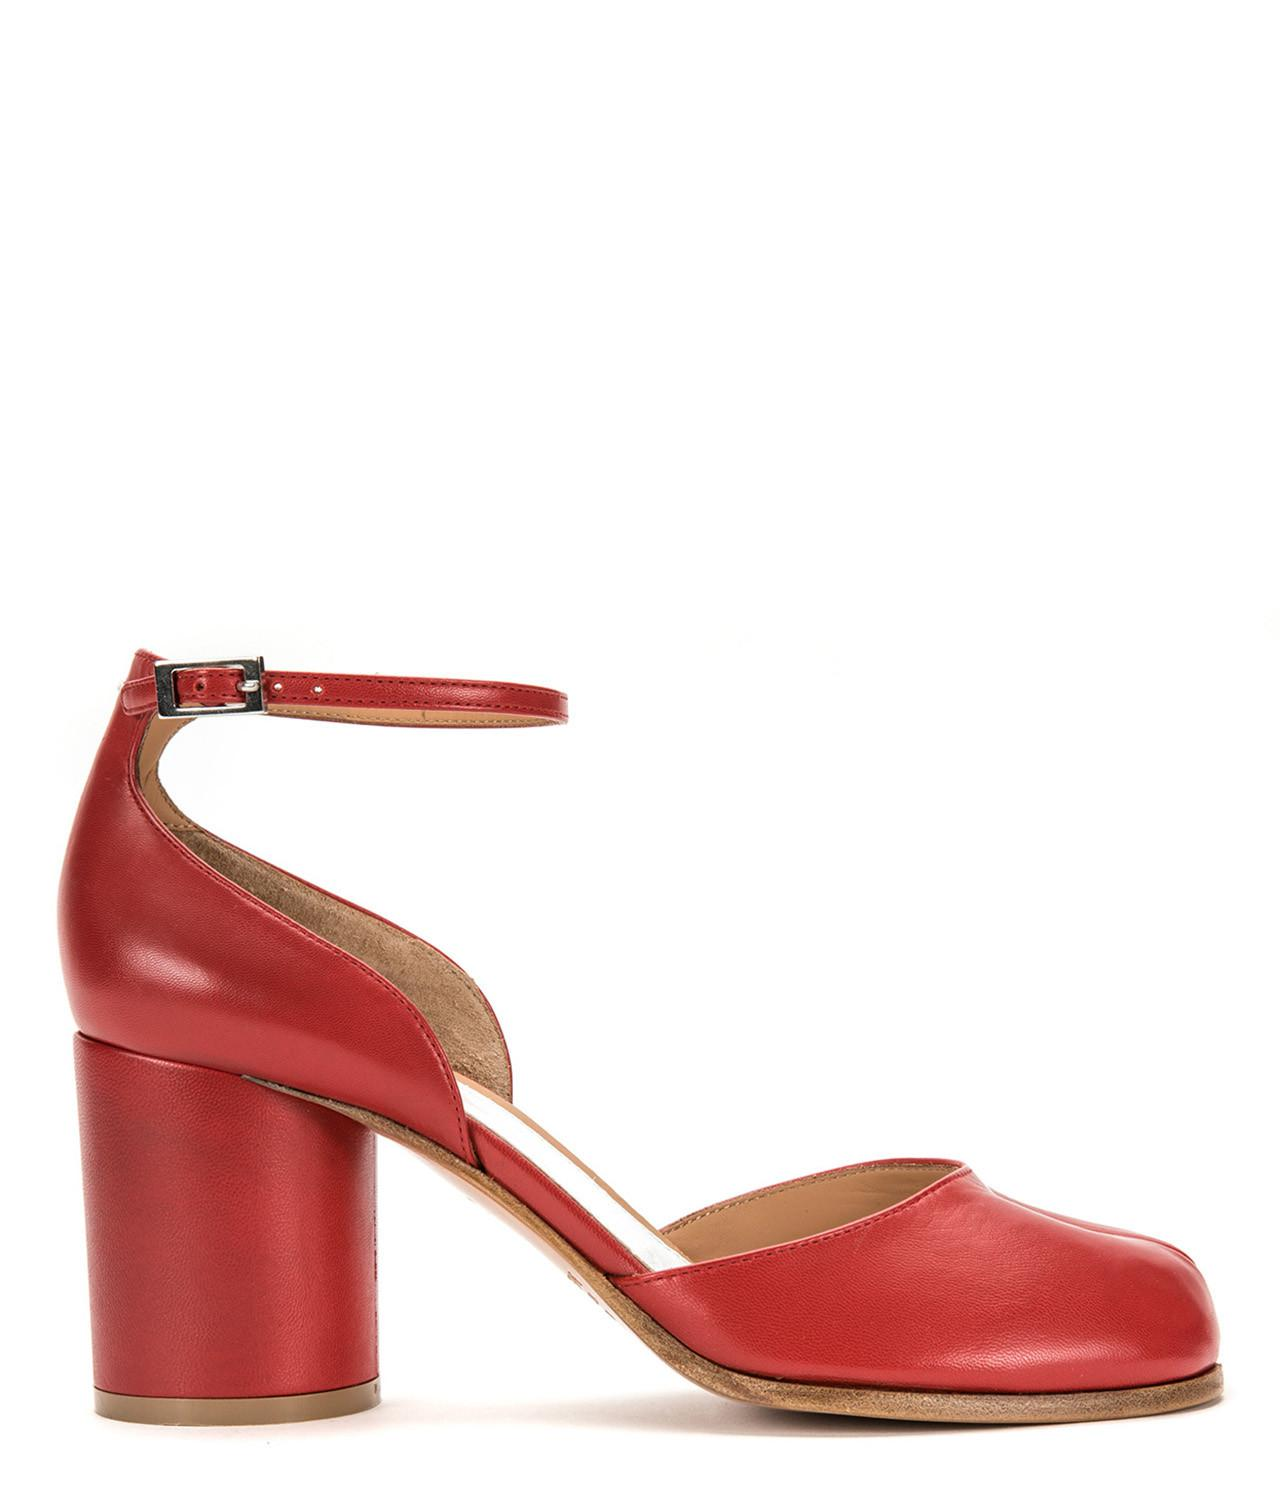 63168ea9f4d0 Maison Margiela Tabi Leather Ankle-strap Pump in Red - Lyst